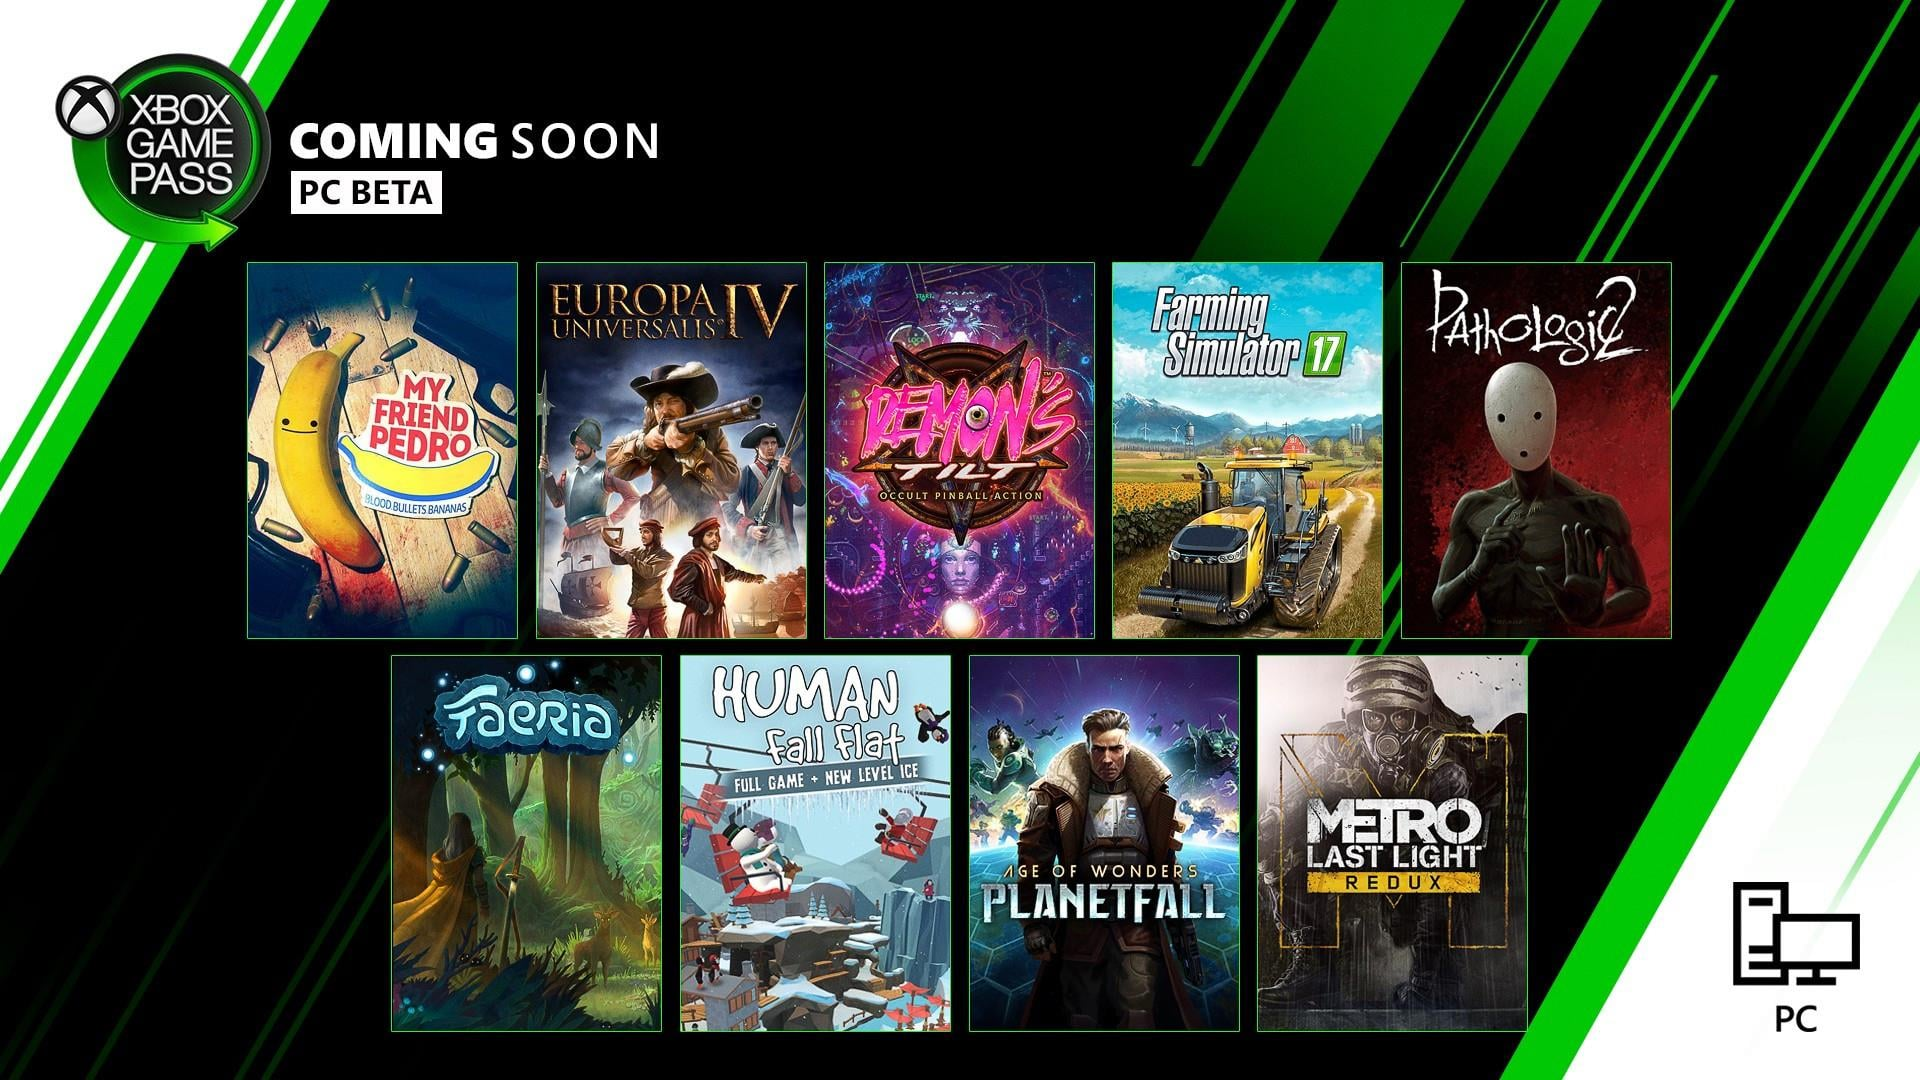 Xbox Game Pass for PC Games Coming Soon: My Friend Pedro, Human Fall Flat  and More